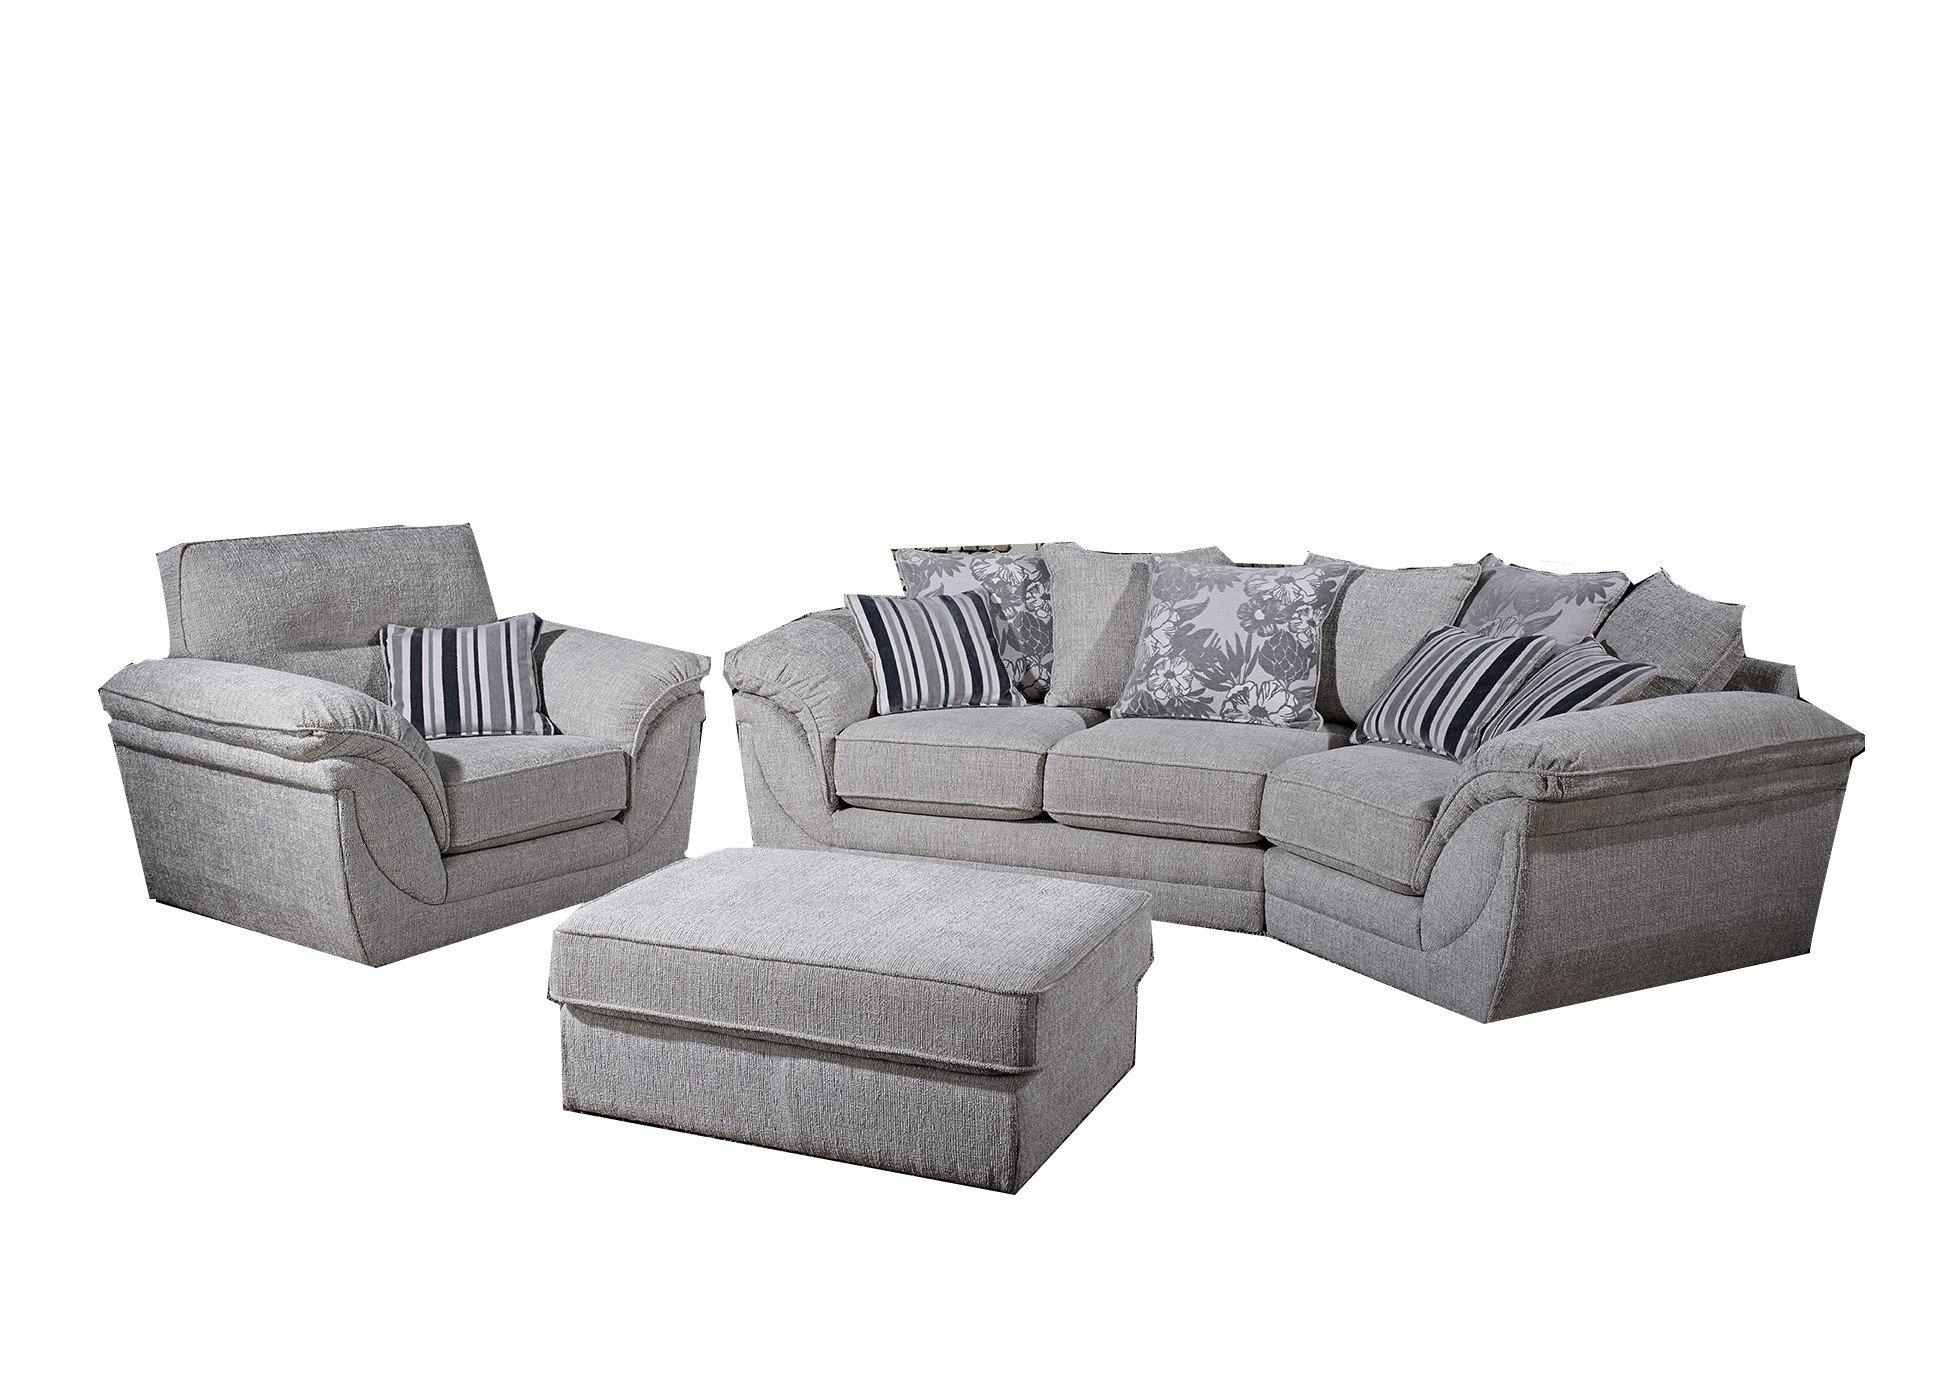 Sofas Center : 40 Magnificent Serta Convertible Sofa Image Concept With Snuggle Sofas (Image 20 of 20)